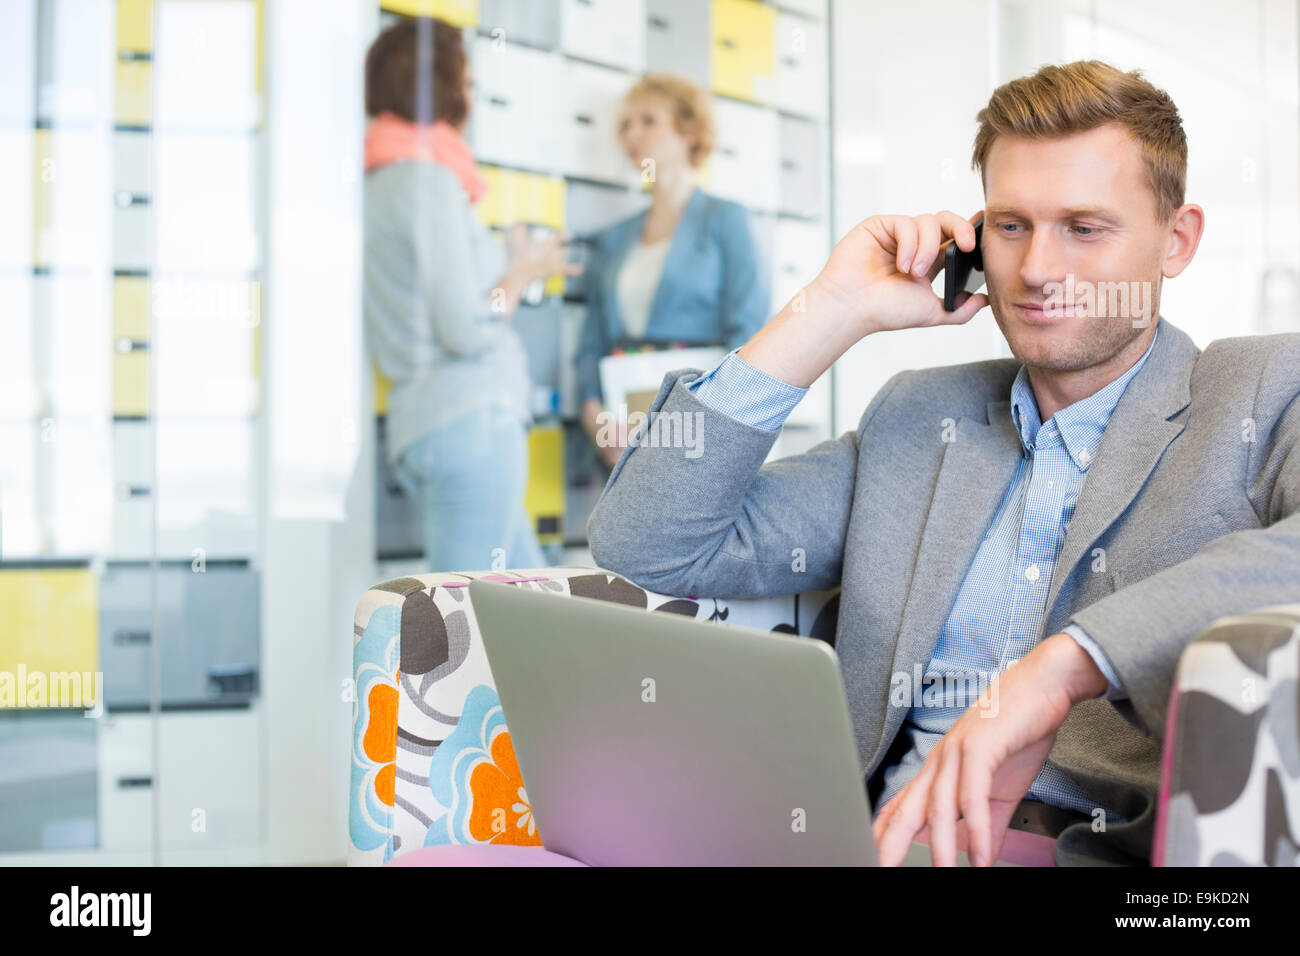 Businessman using technologies with colleagues discussing in background at creative office - Stock Image